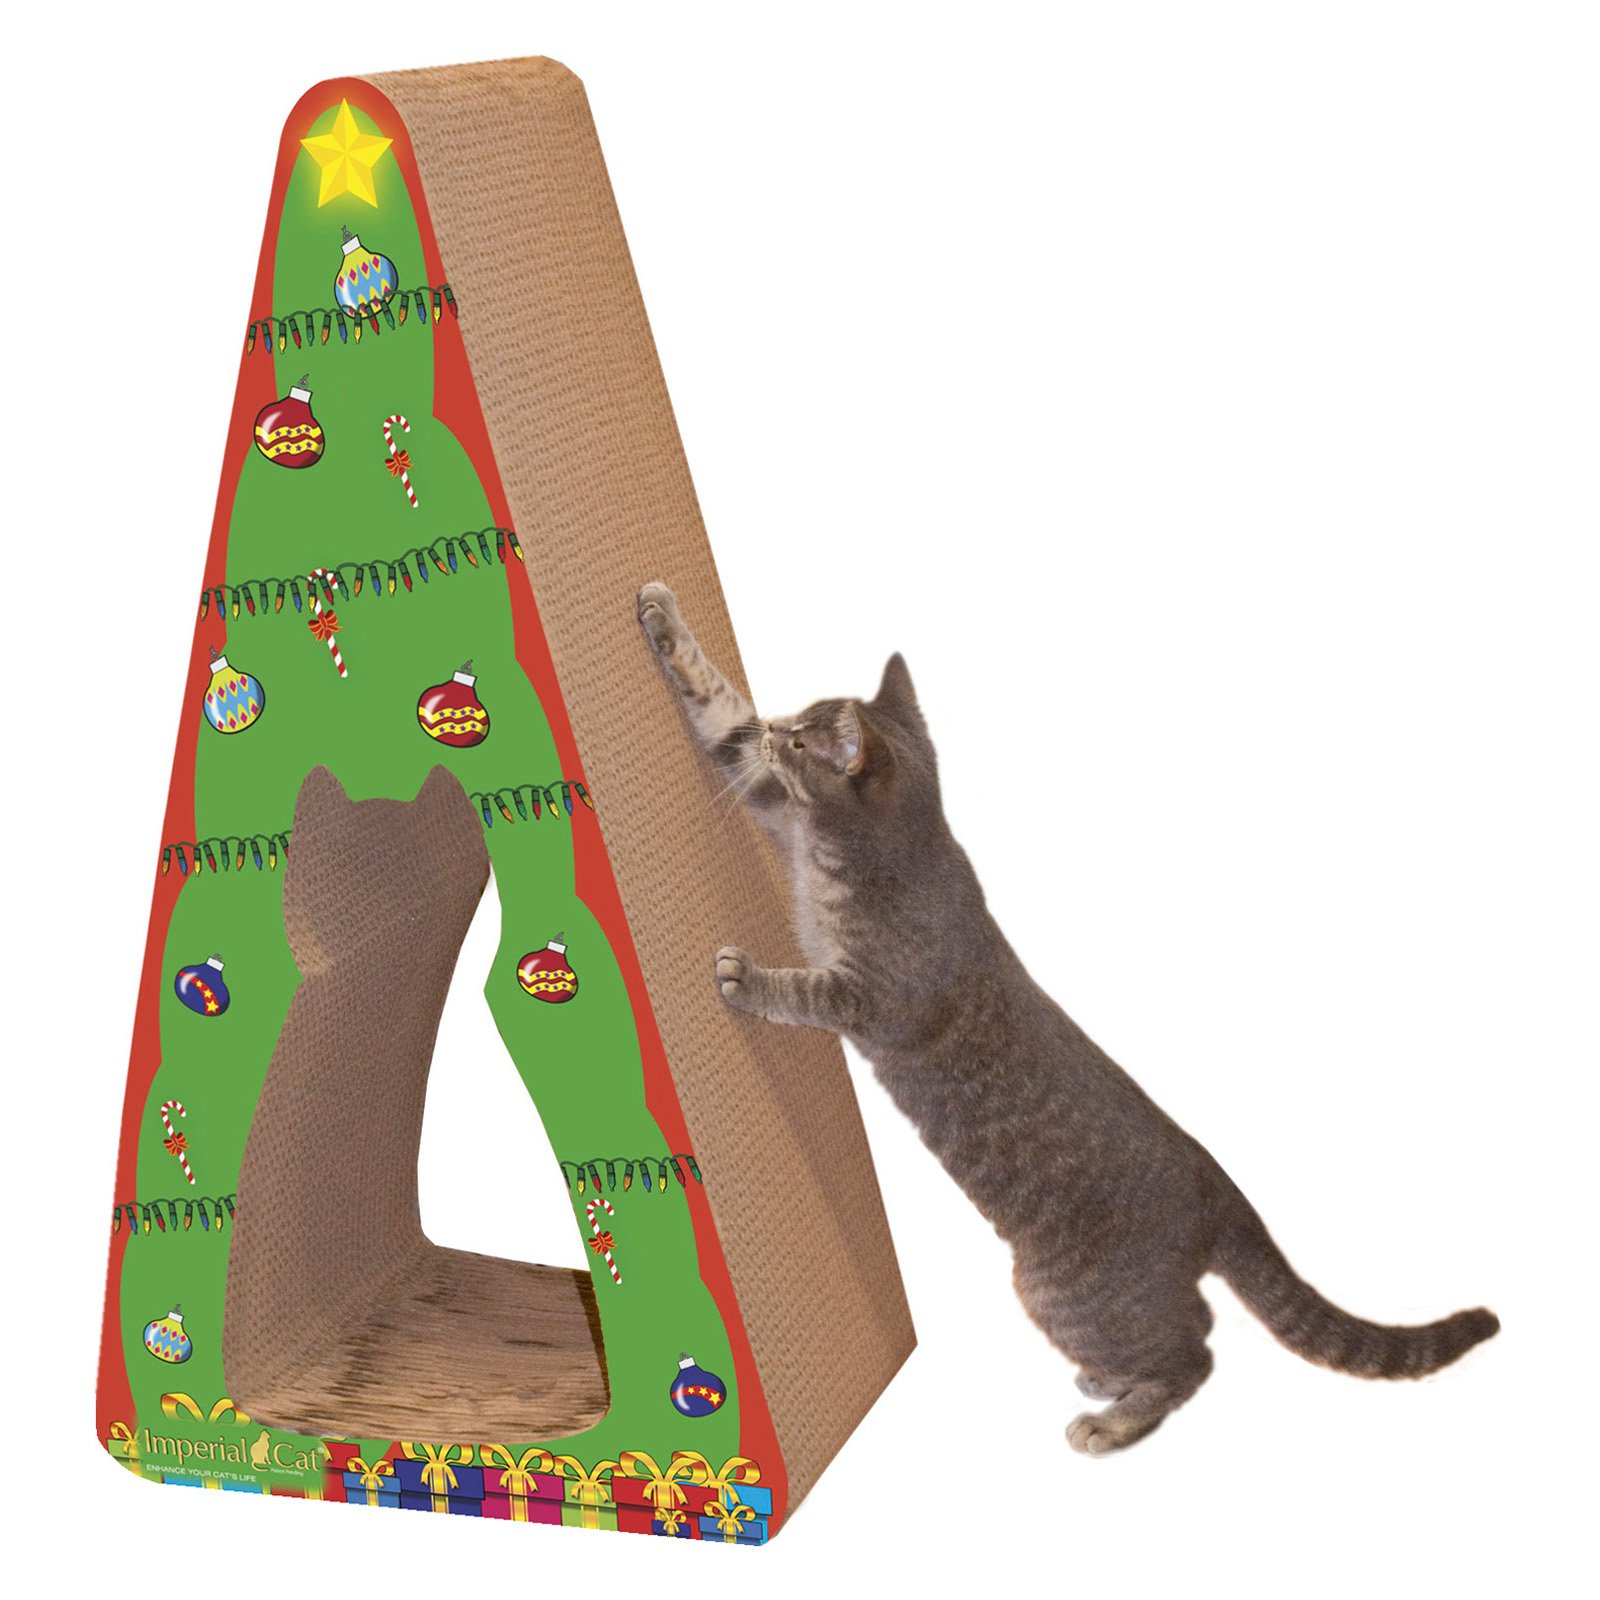 Imperial Cat Holiday Scratch n Shapes Giant Christmas Tree Cat Toy